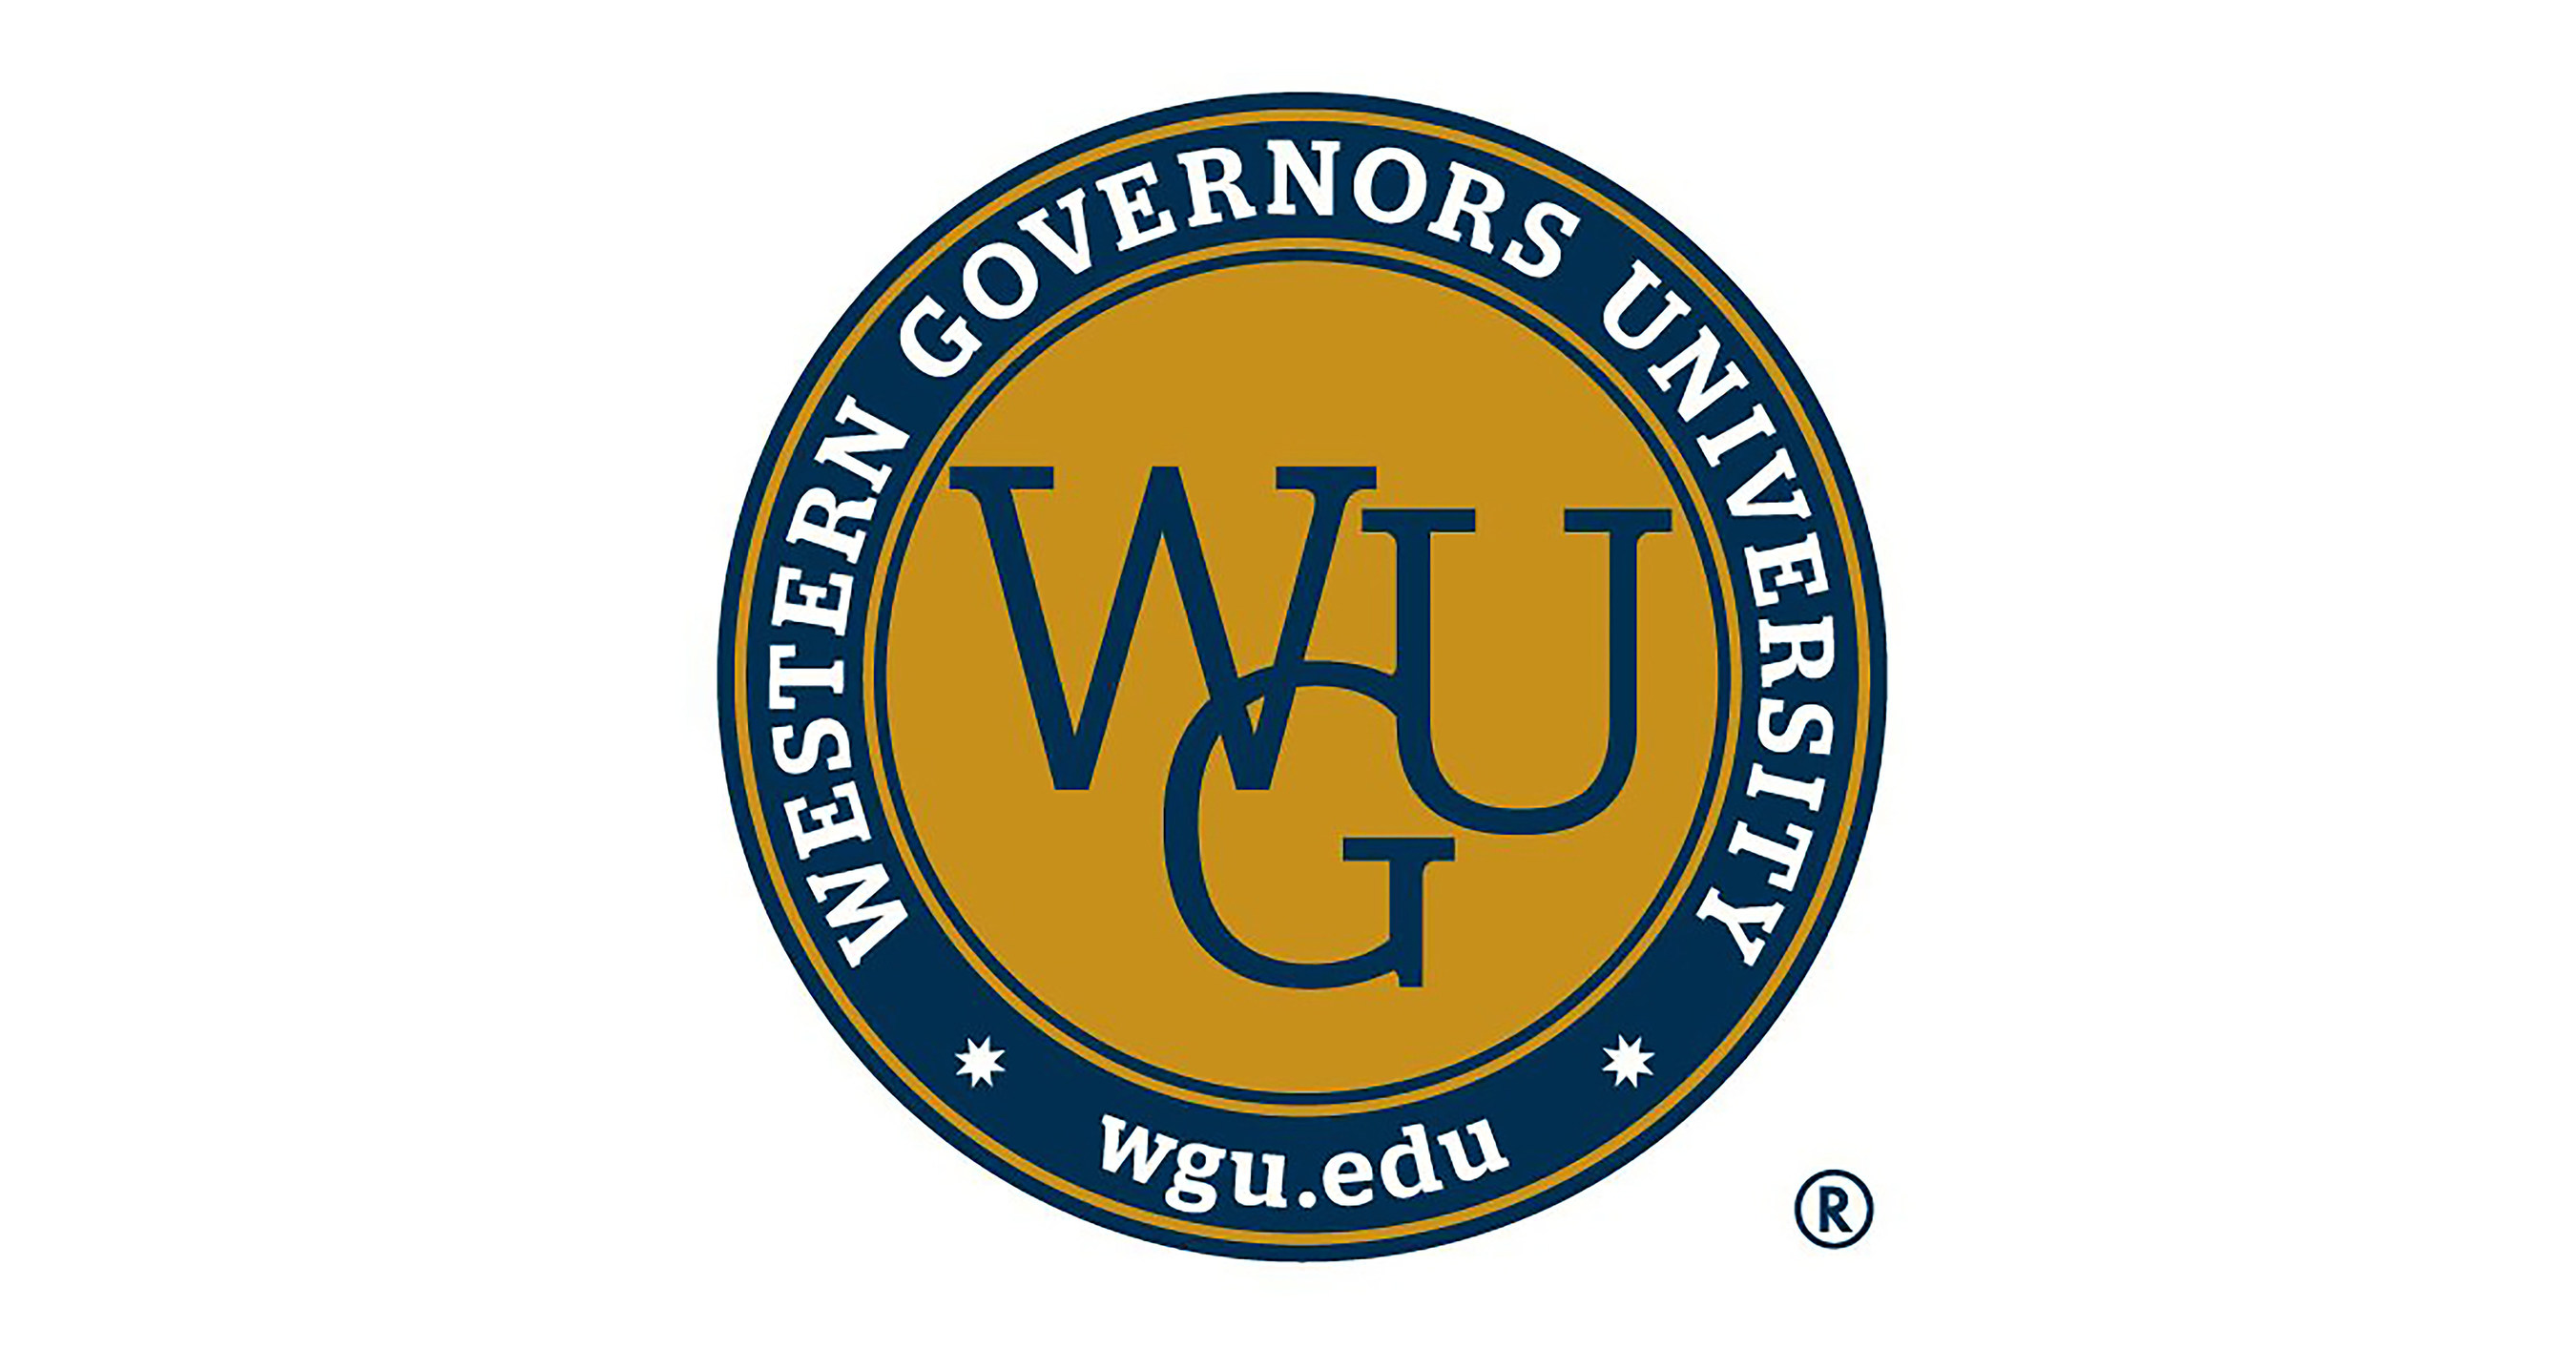 WGU's 70th Commencement Ceremony in Orlando Commemorates a Dream